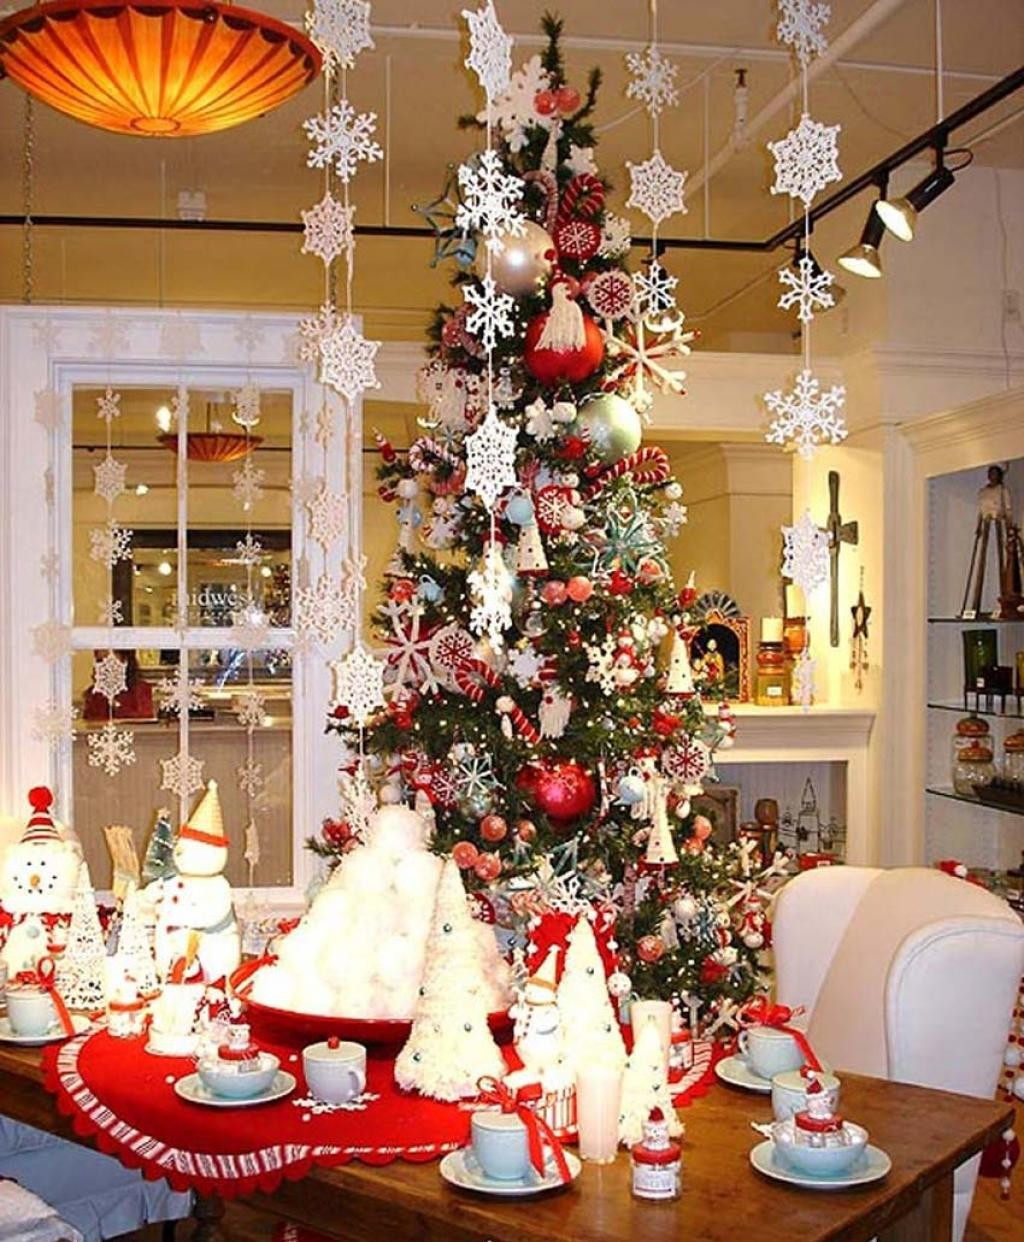 Christmas Tables Decorated 40 Christmas Table Decors Ideas To Inspire Your Pinterest